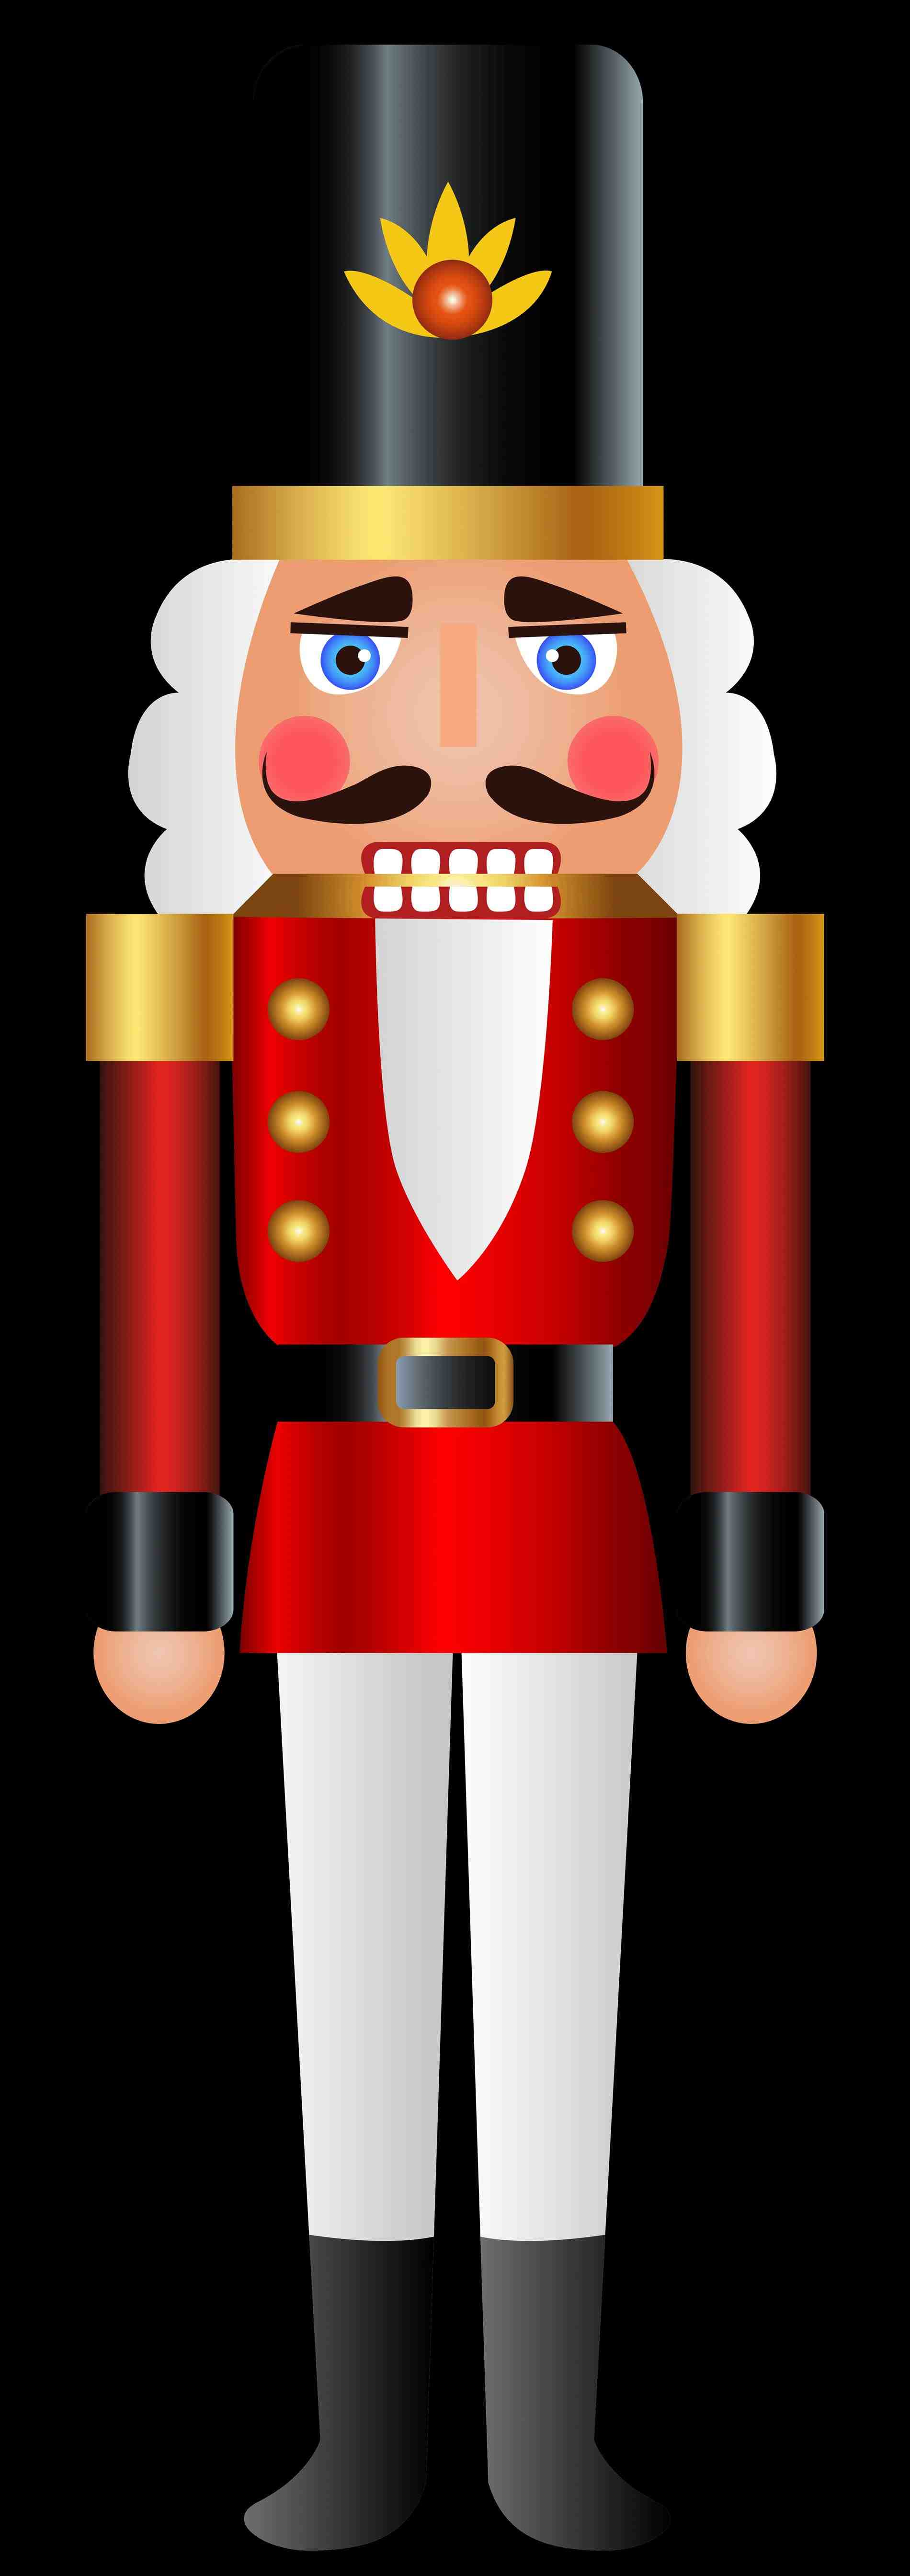 Nutcracker clipart clip royalty free download Free Nutcracker Clipart | Free download best Free Nutcracker ... clip royalty free download